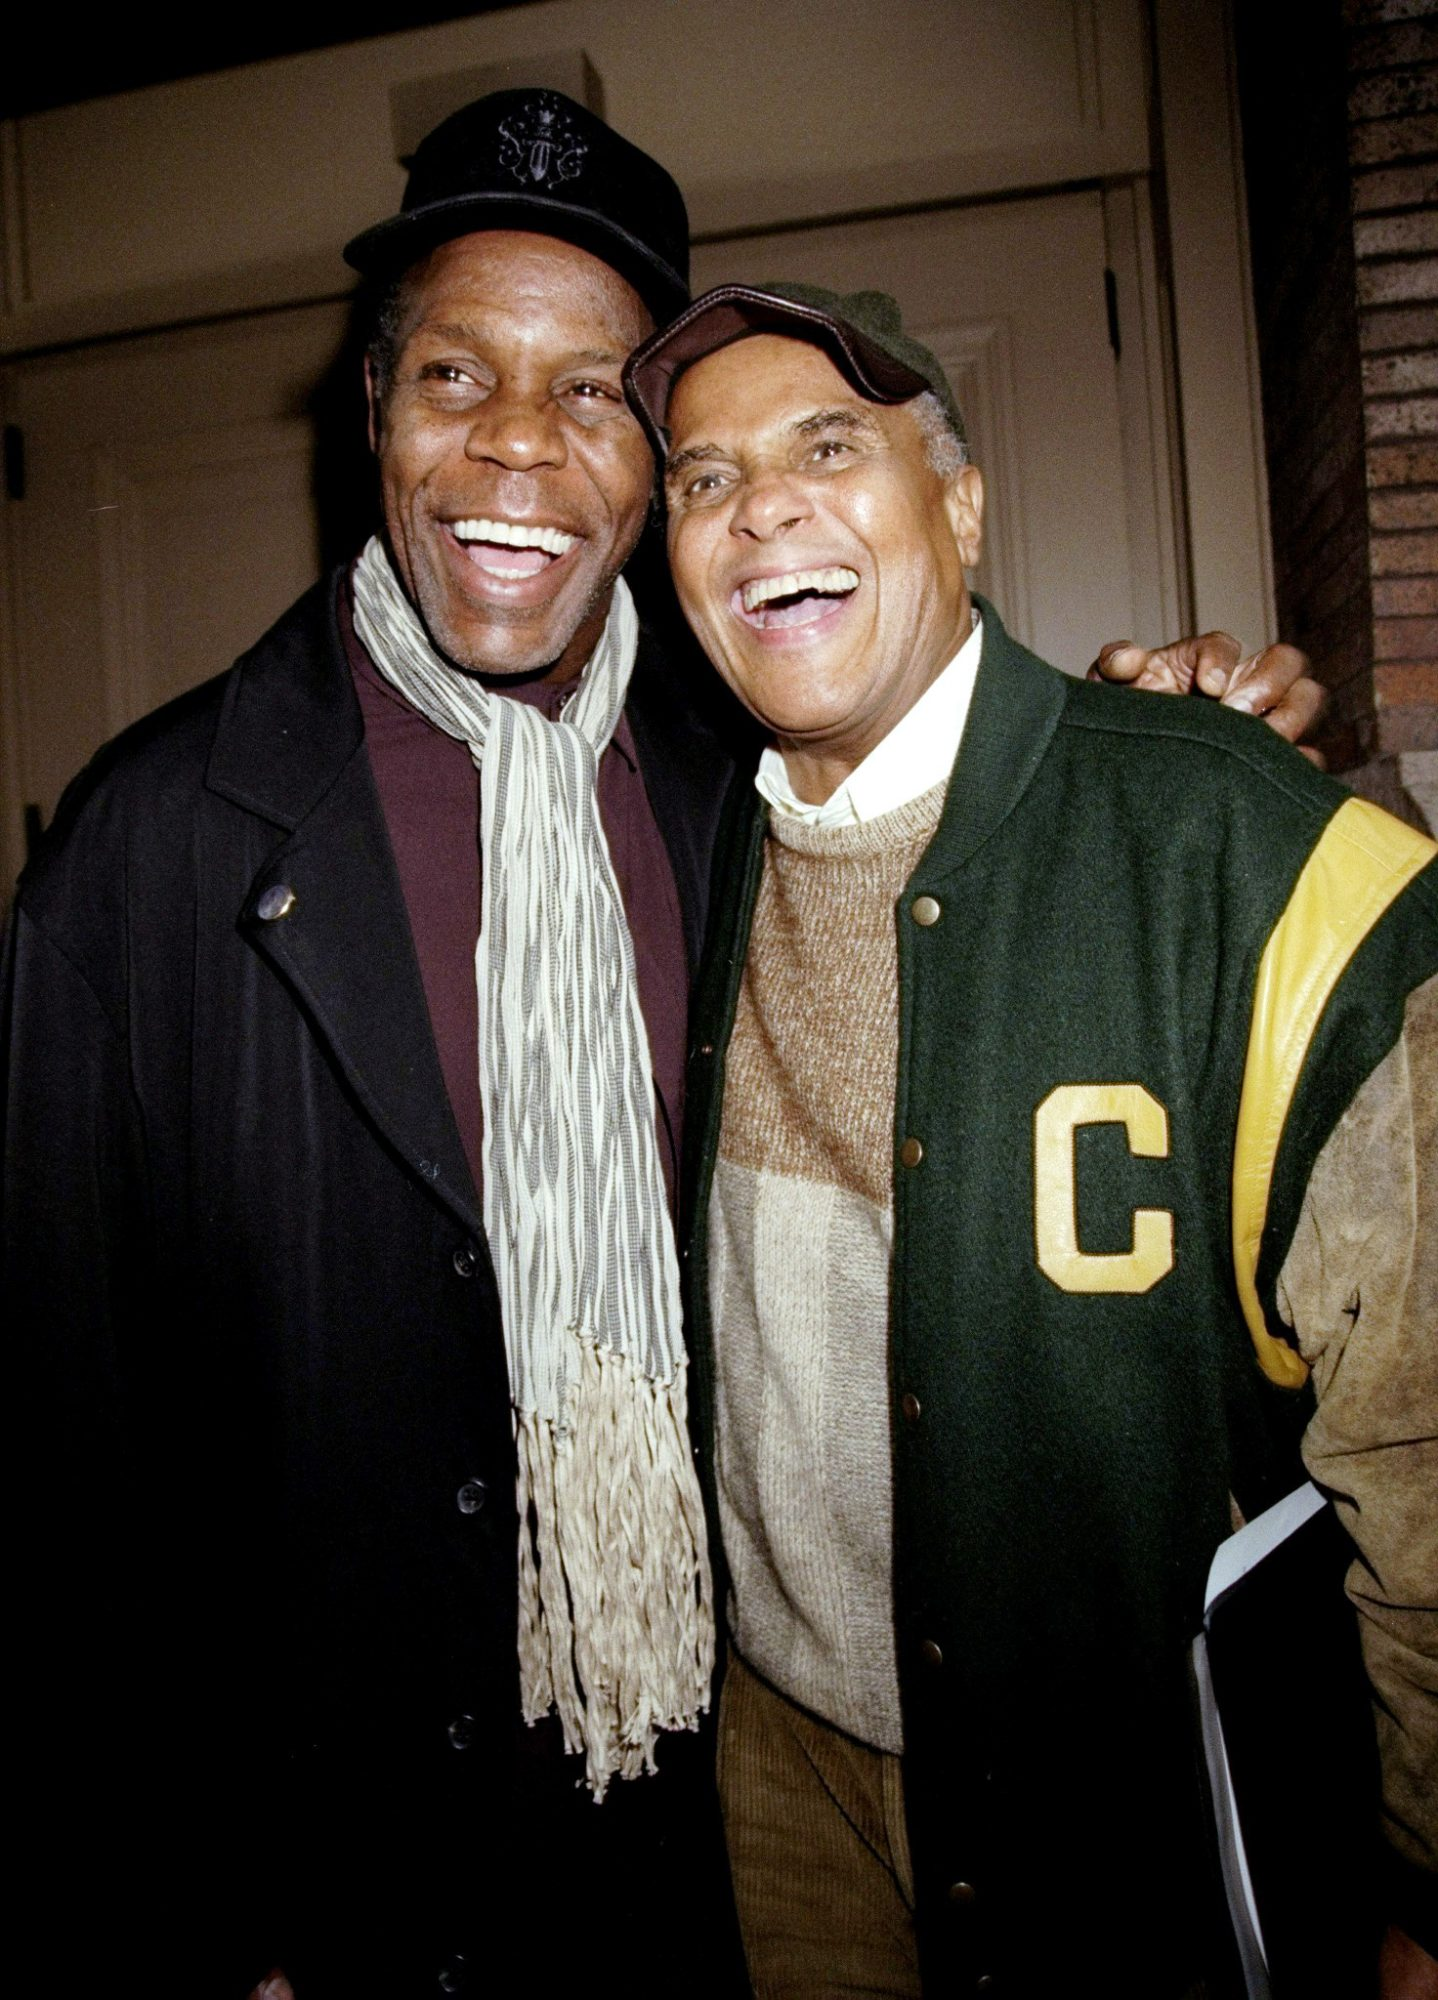 Danny Glover and Harry Belafonte outside Carnegie Hall after